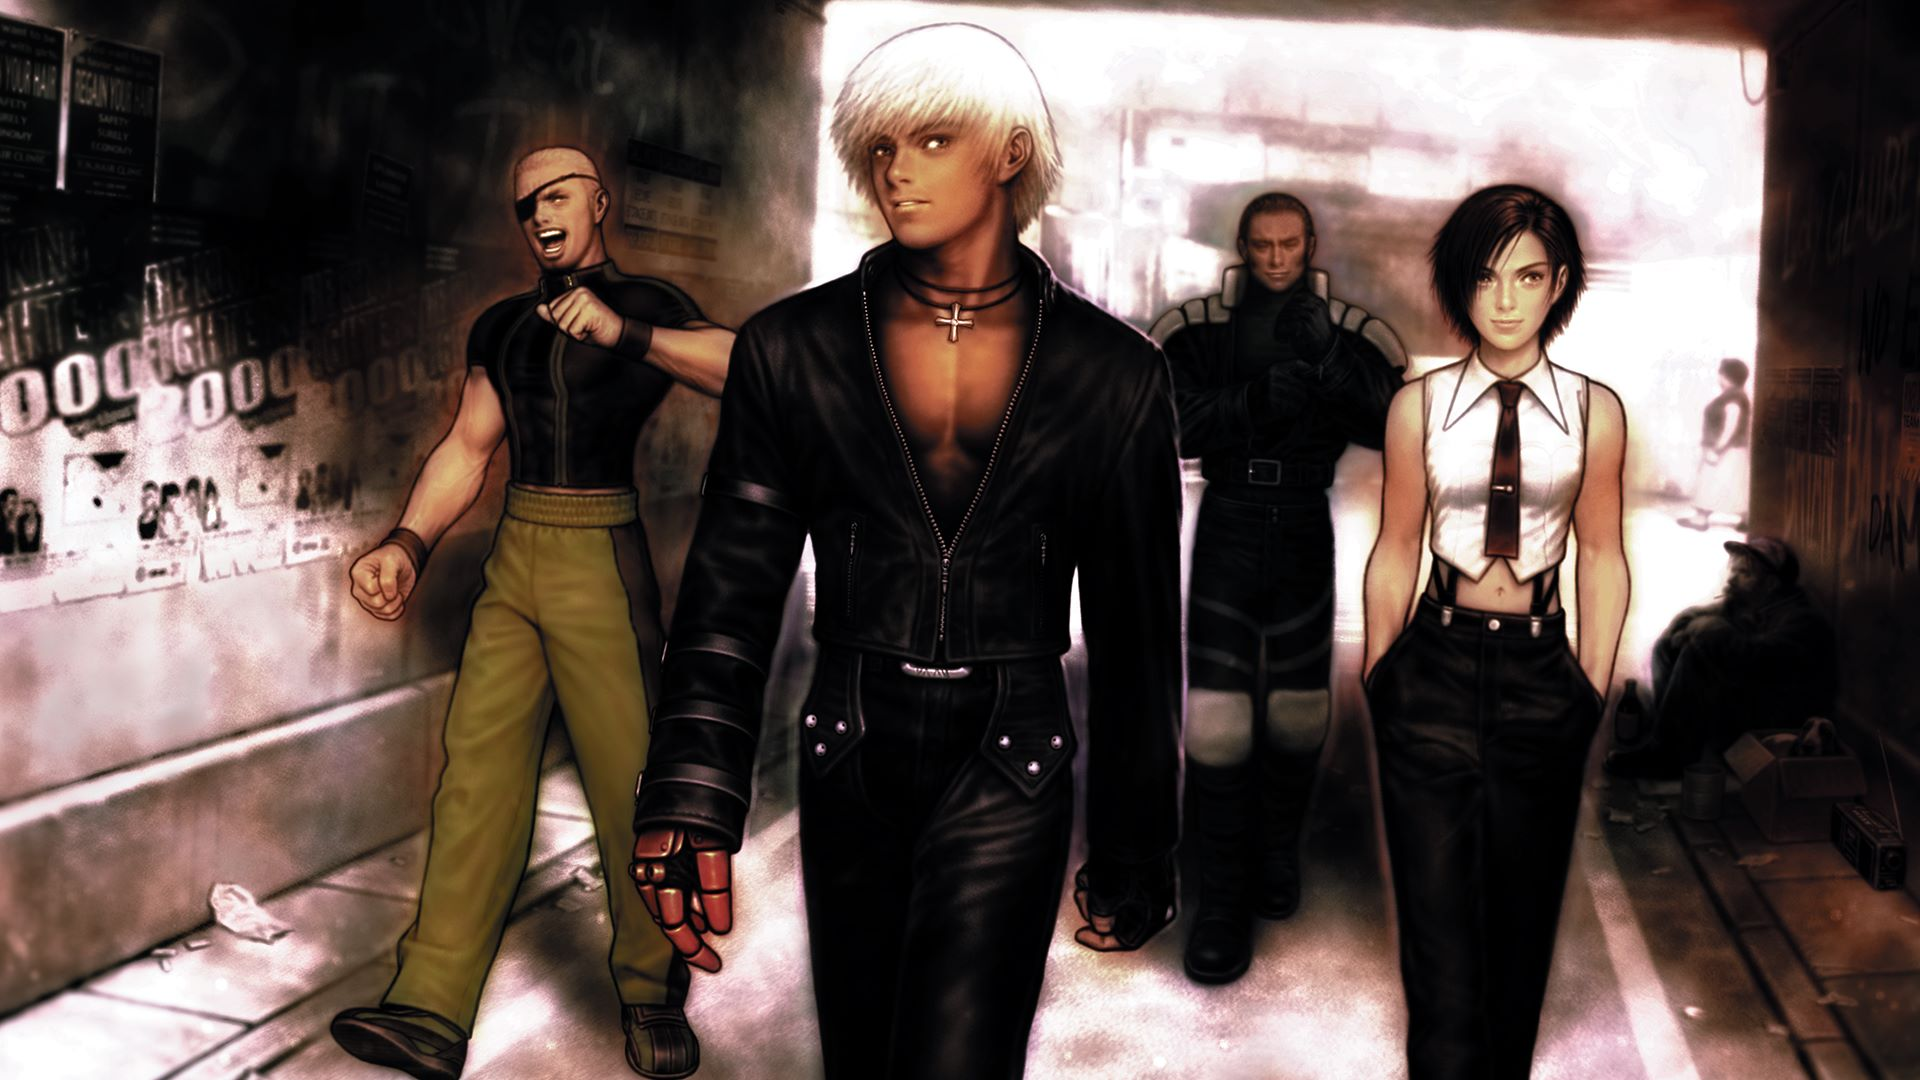 ACA NEOGEO THE KING OF FIGHTERS 2000 disponible para Xbox One